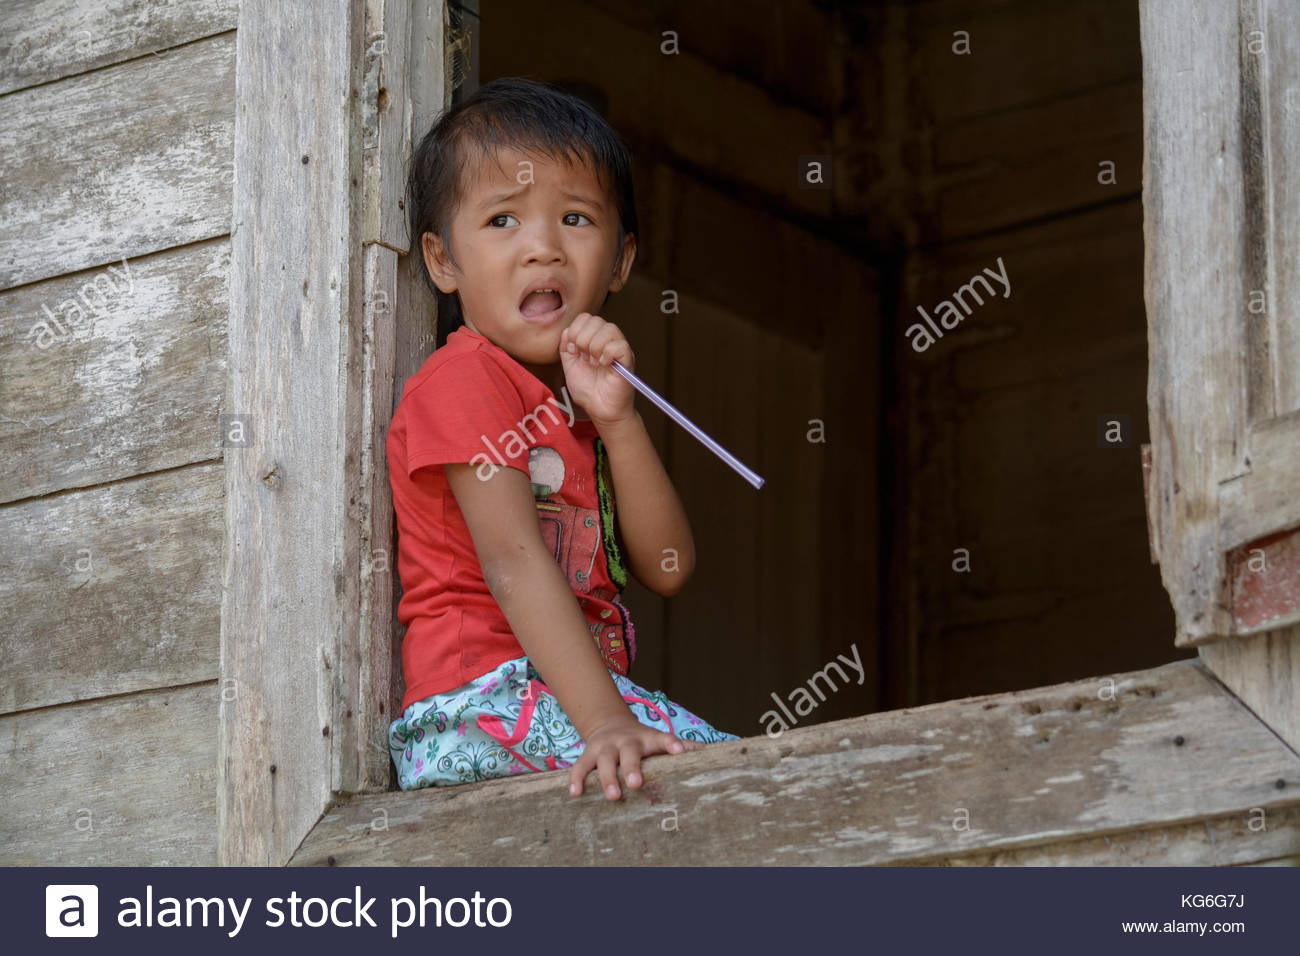 A Portrait Of Dayaknese Kid Sitting At Window - Stock Image